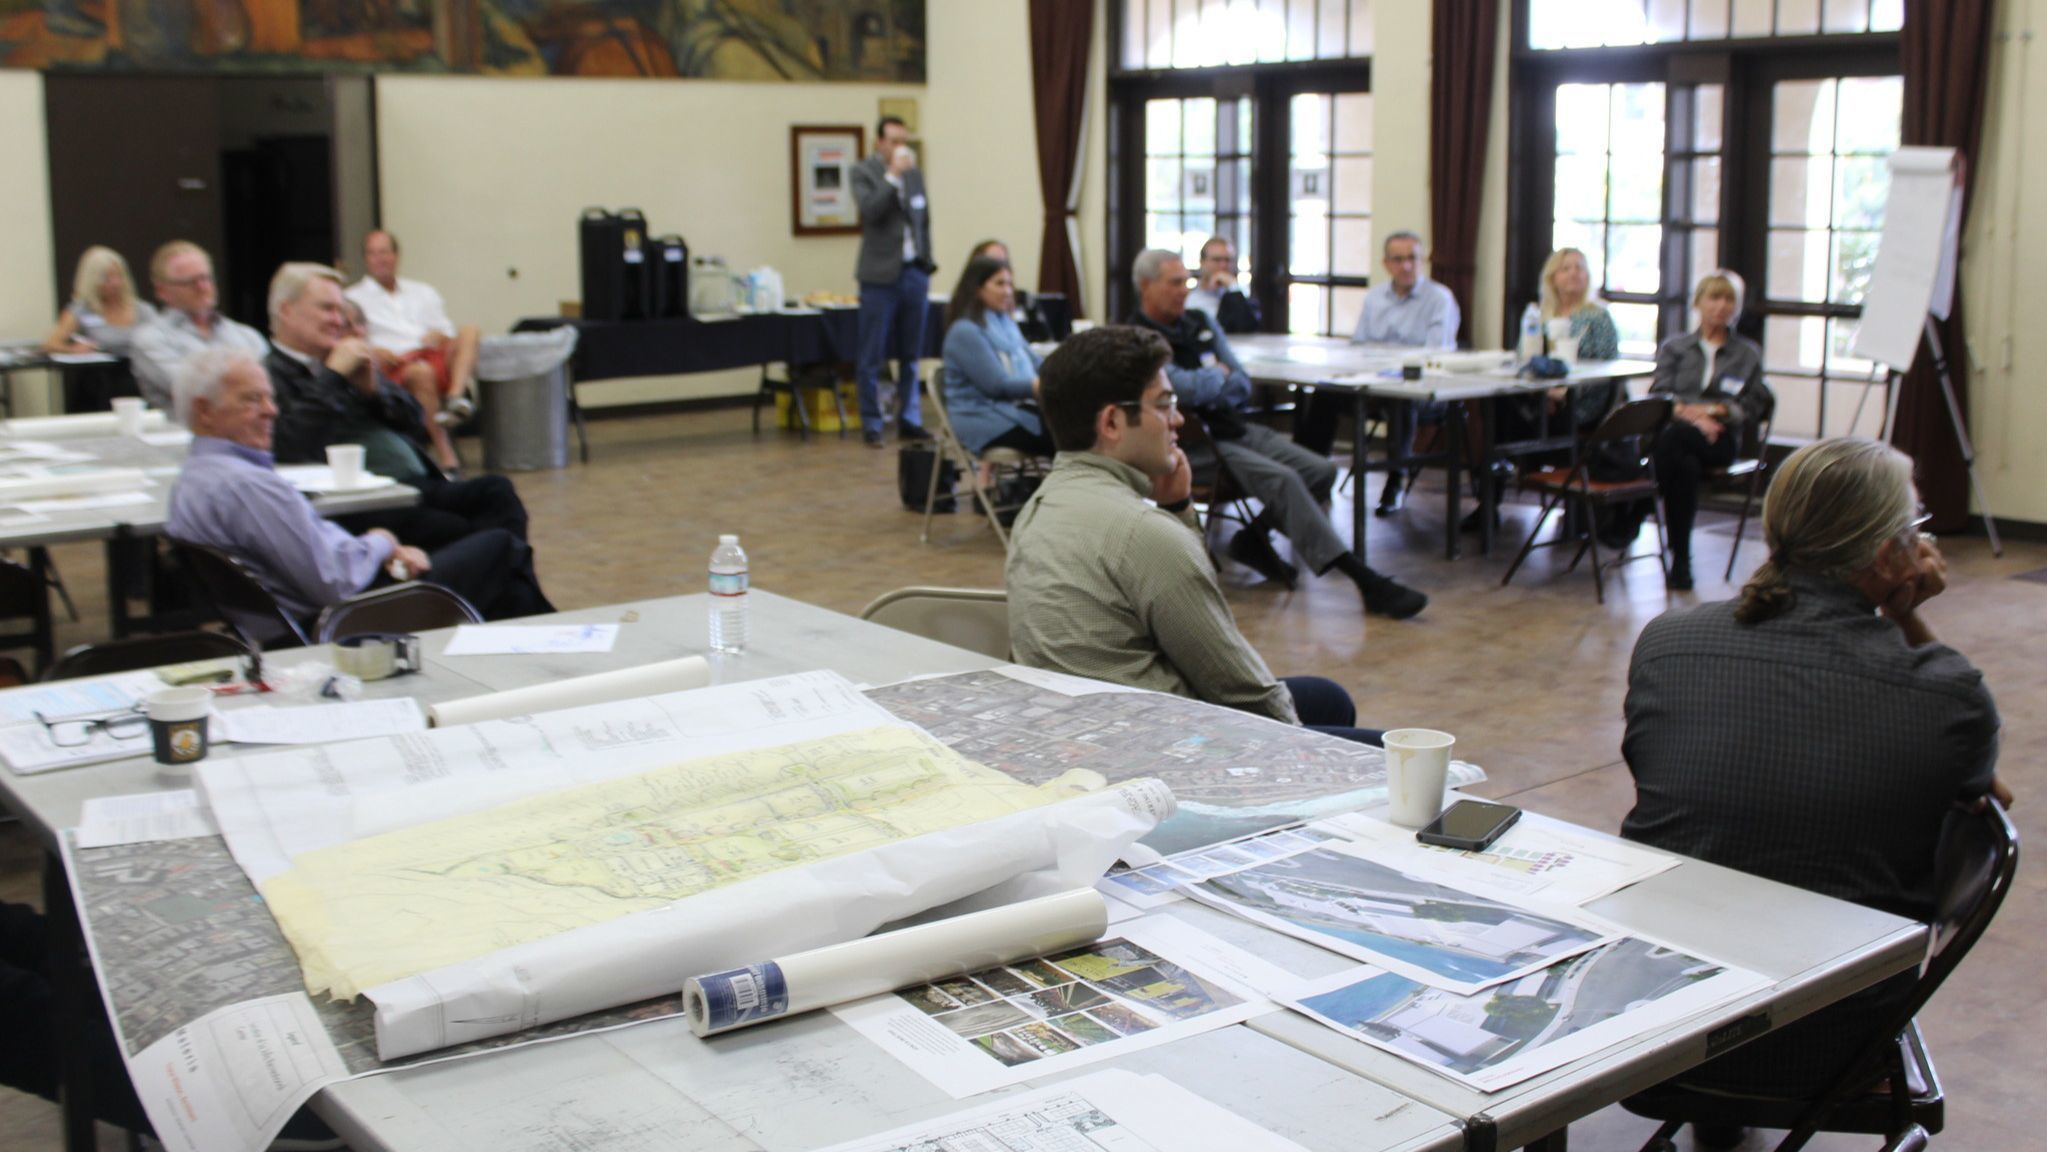 Architects, community leaders, environmentalists, historians and urban planners listen to presentations on the charette's second day.